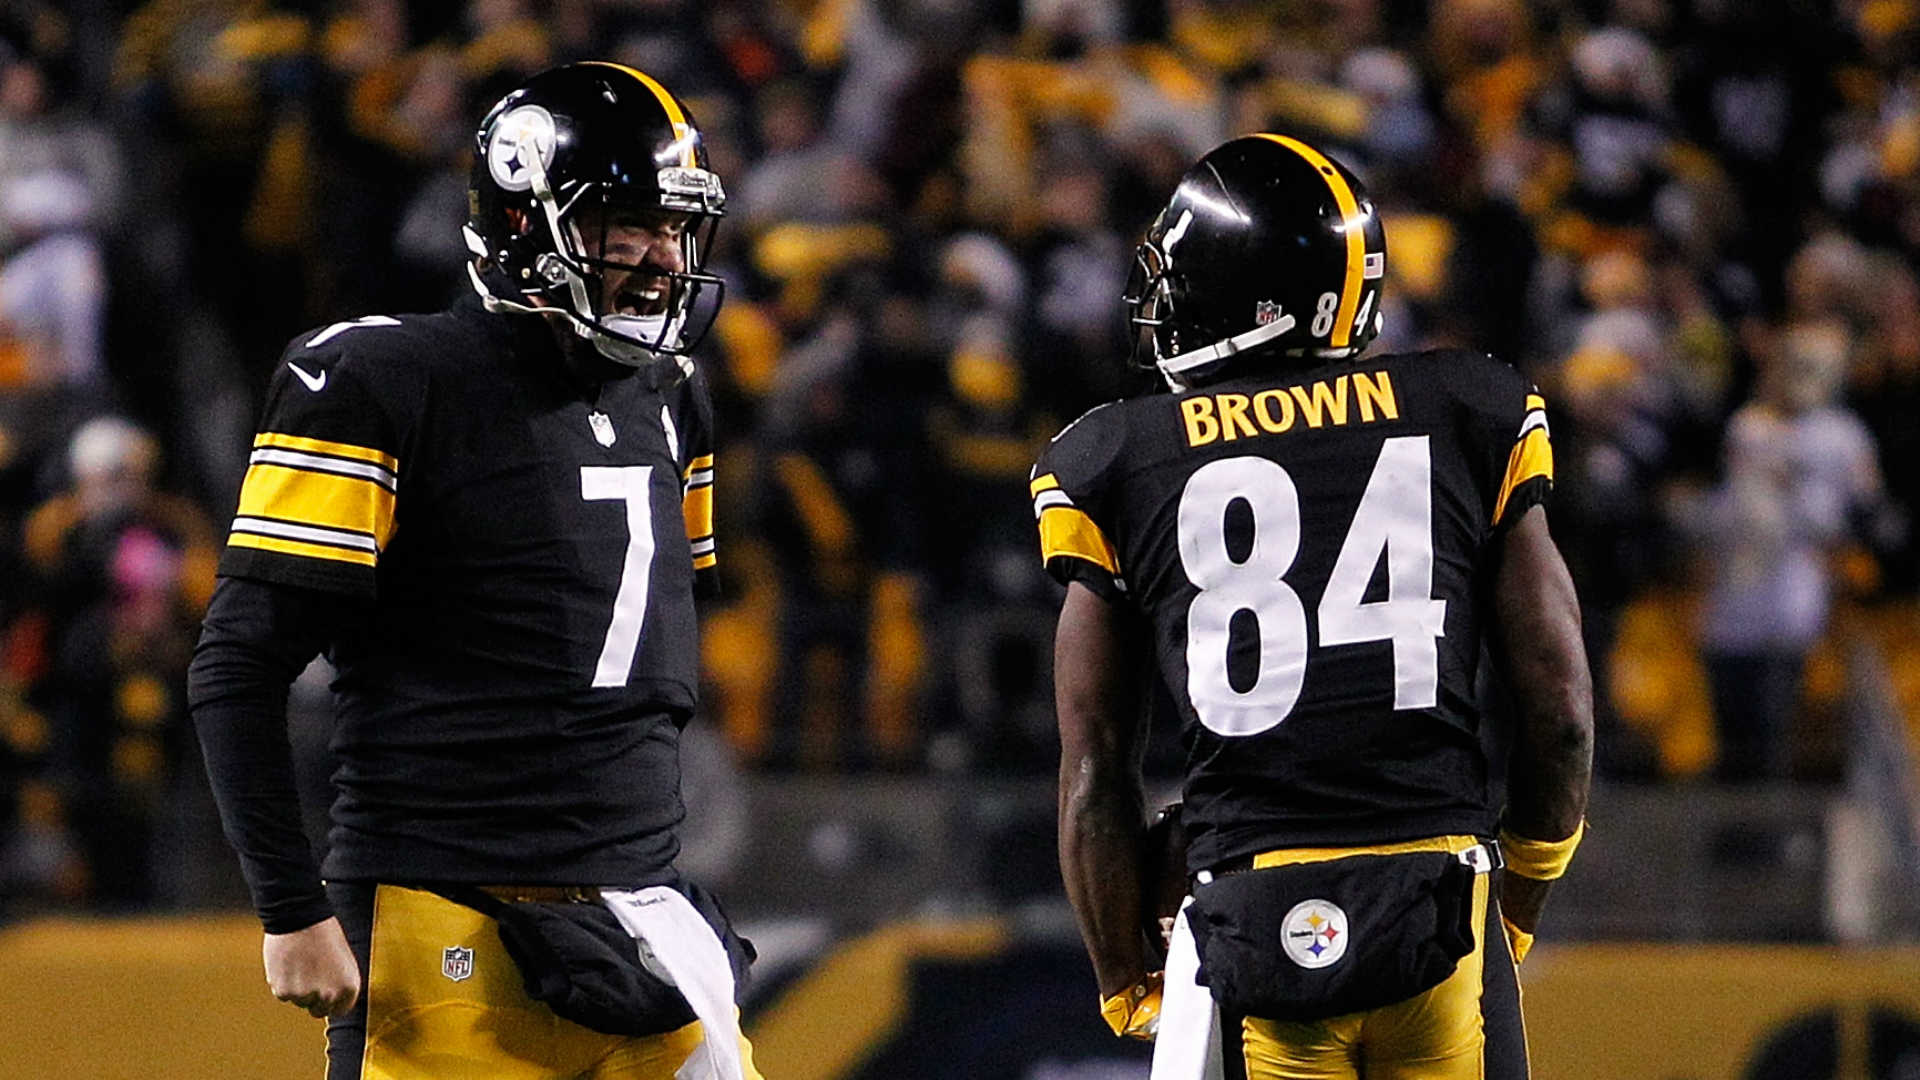 NFL's best offense plays in Pittsburgh, just as Ben Roethlisberger